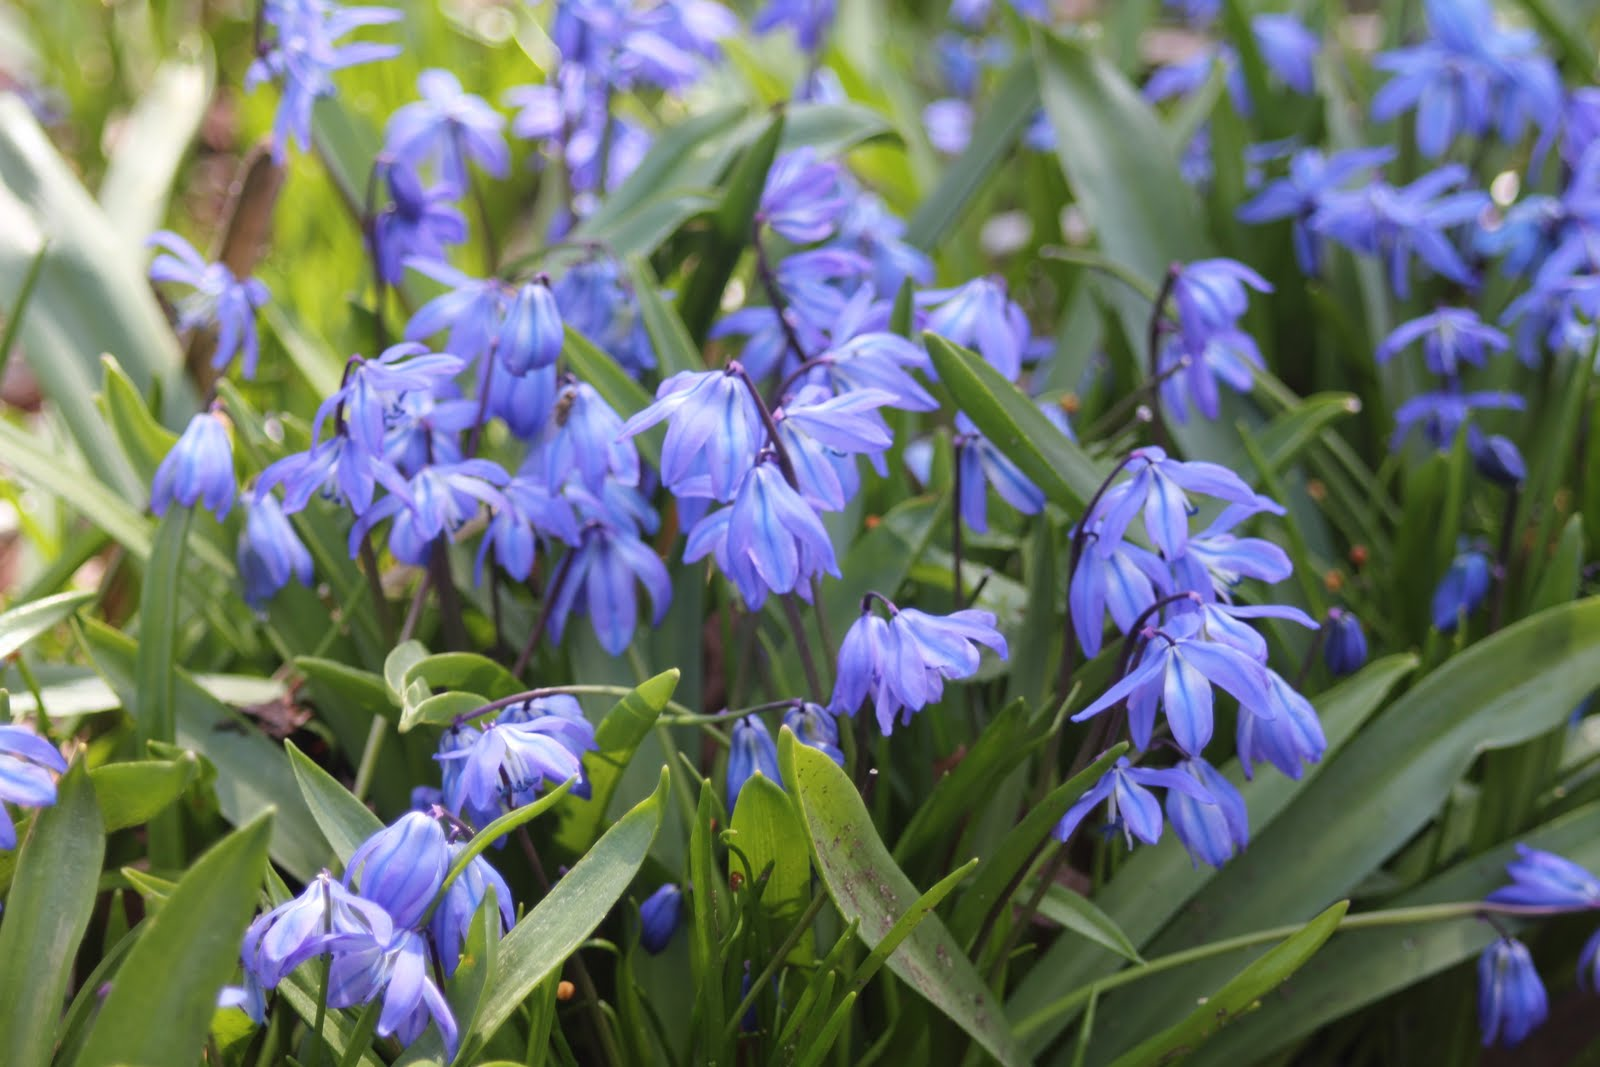 Scilla auntie dogma s garden spot - April 12 2013 Categories Flowers Gardening General Info Small Tips Tags Flowers Photography Scilla Spring Leave A Comment